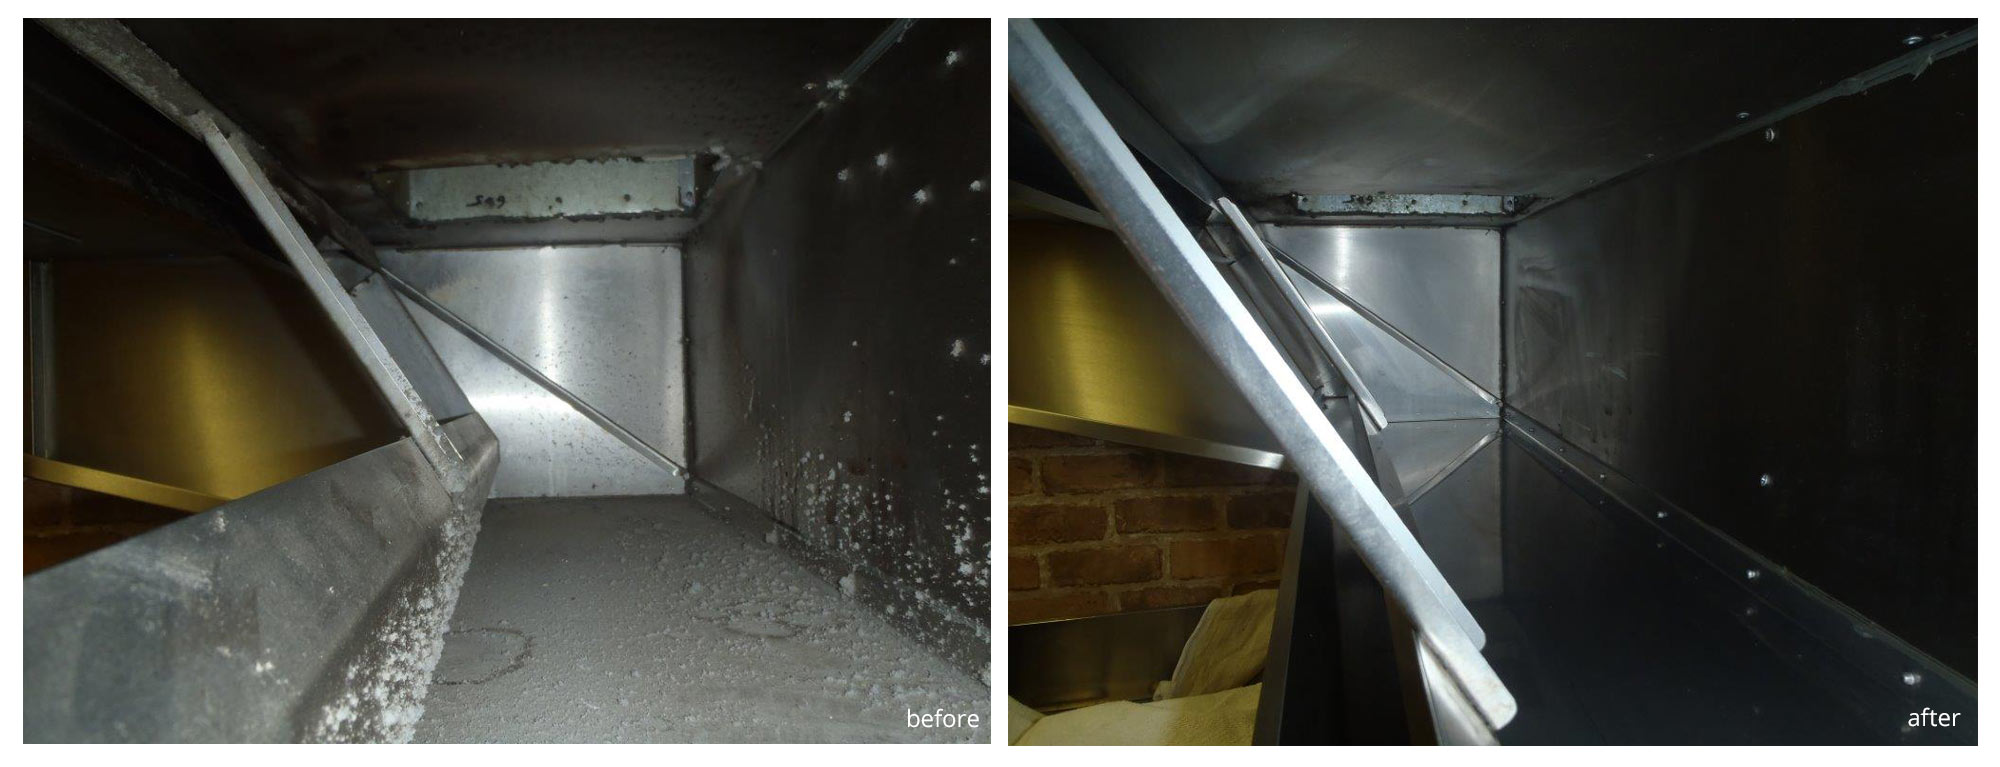 Duct-Cleaning-Before-and-After-3-